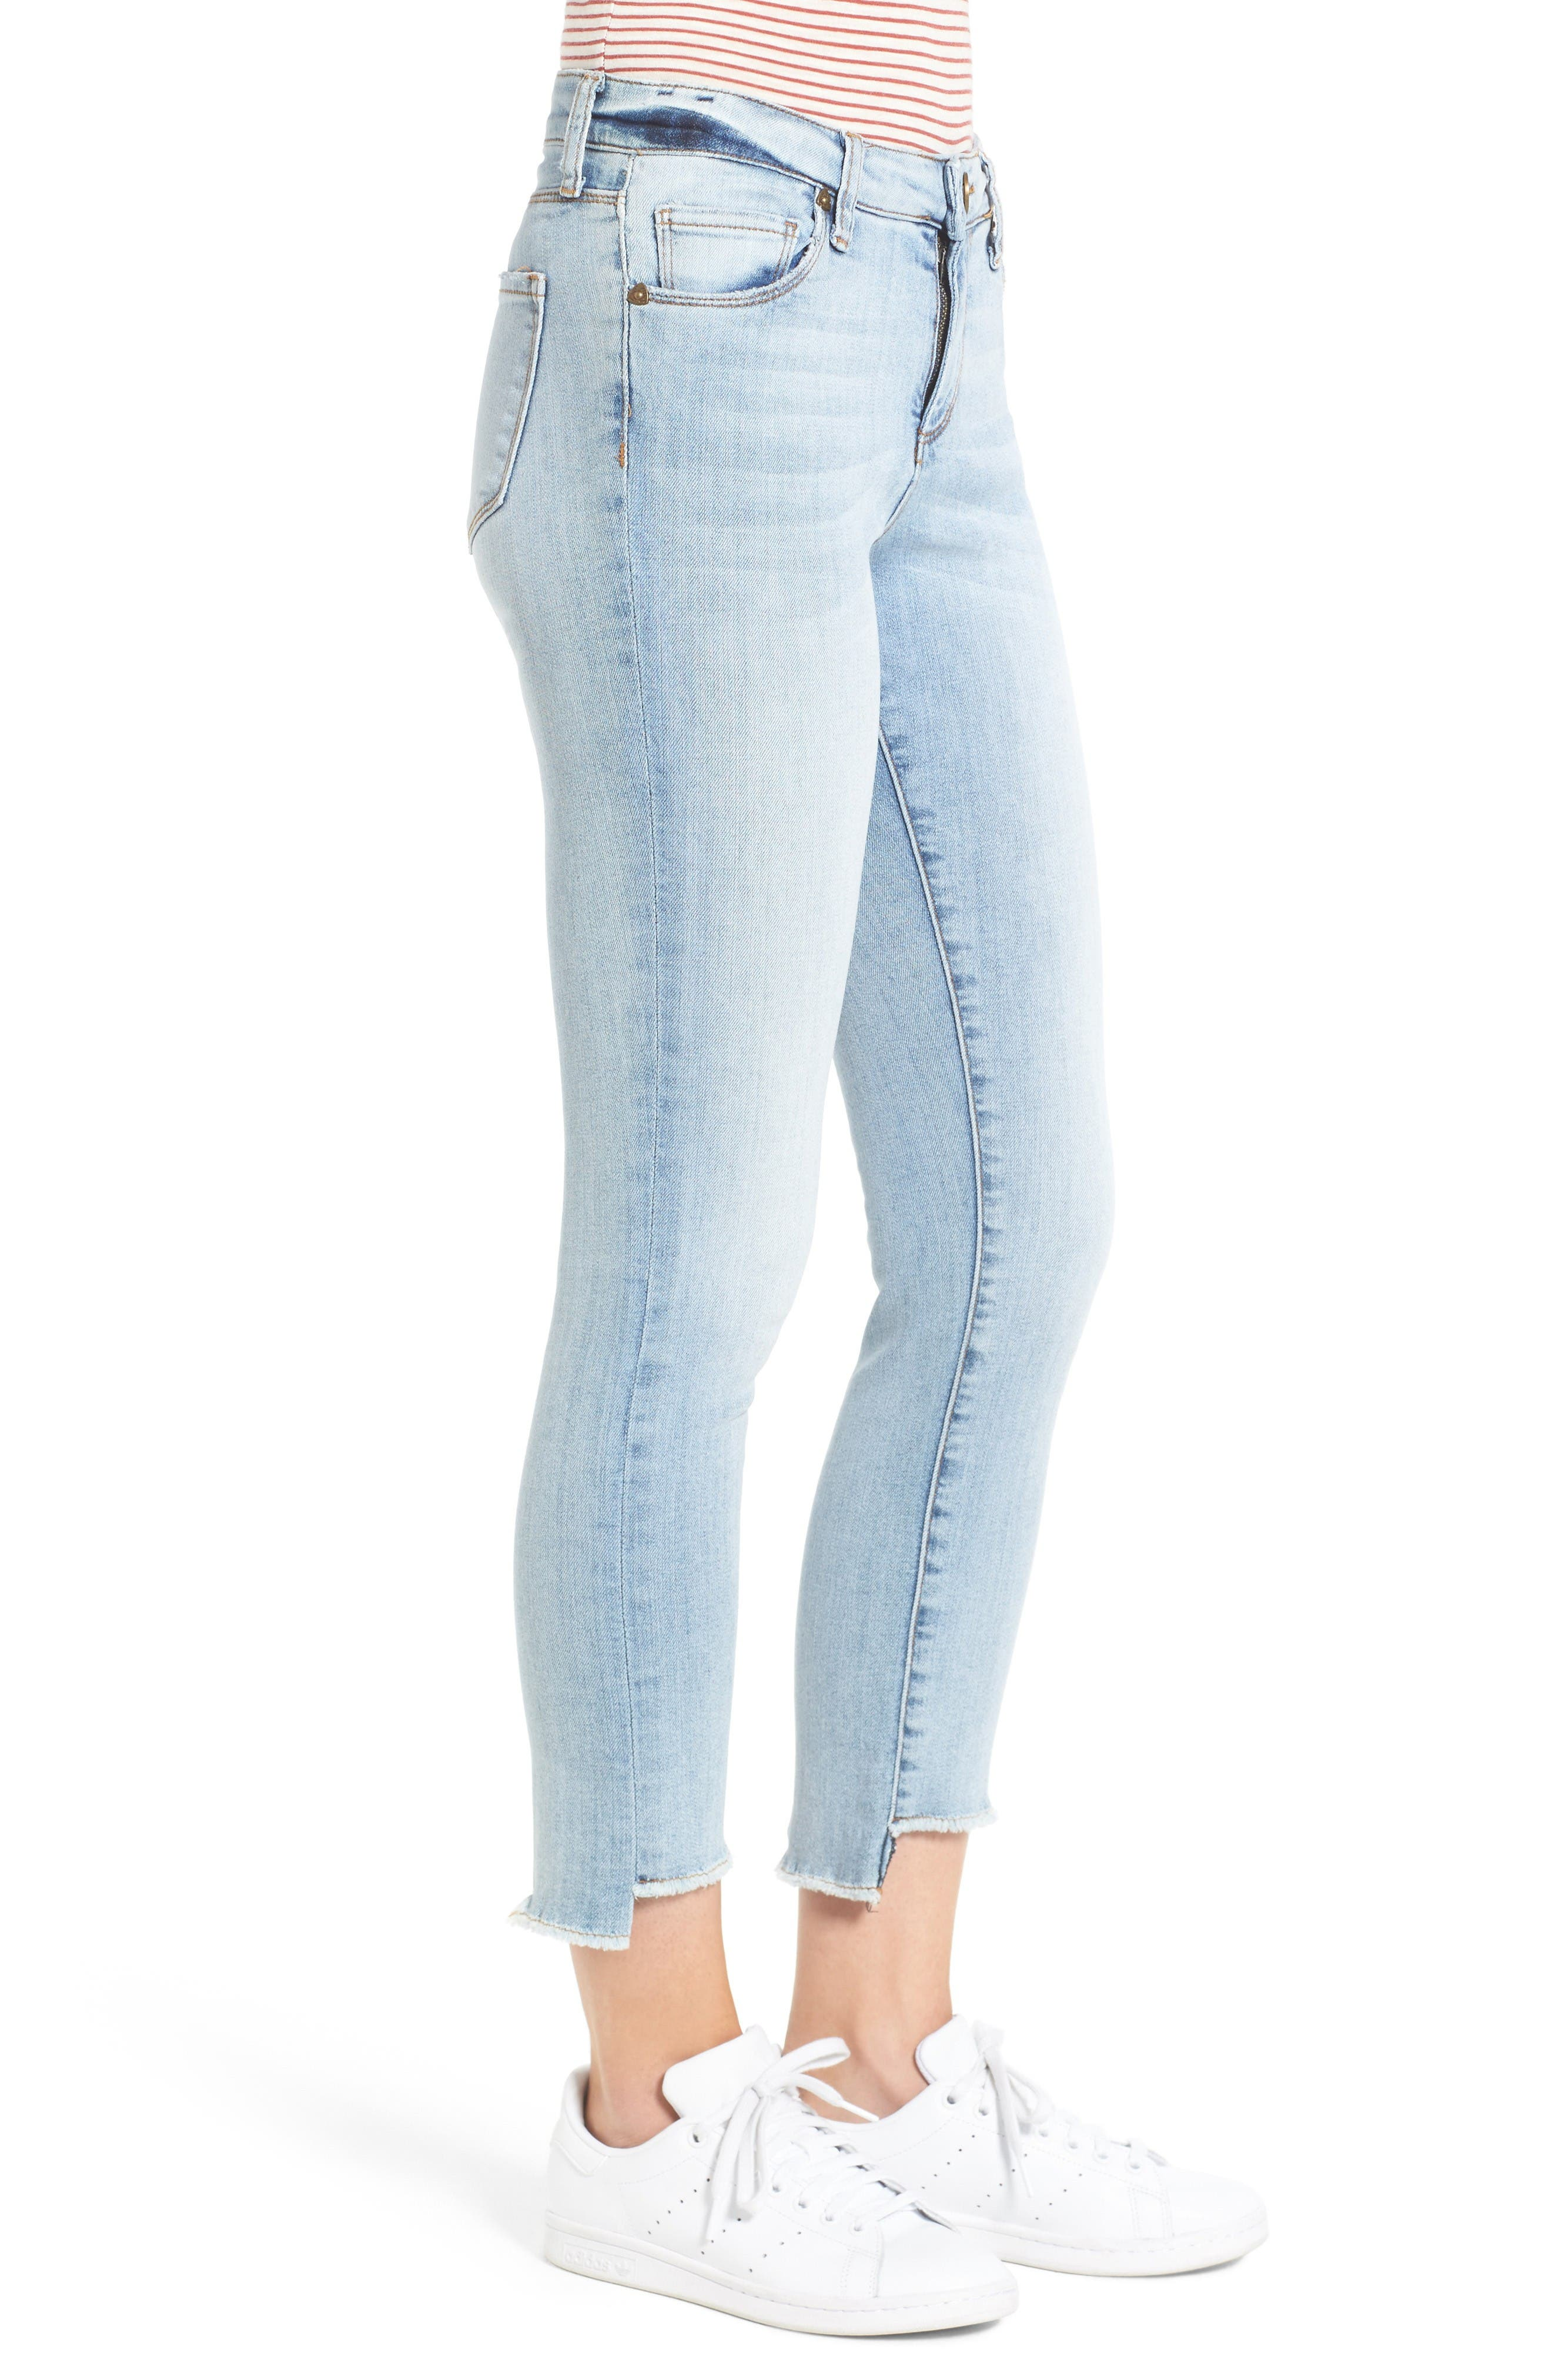 Alternate Image 3  - Kut from the Kloth Reese Uneven Hem Straight Ankle Jeans (Celebratory)